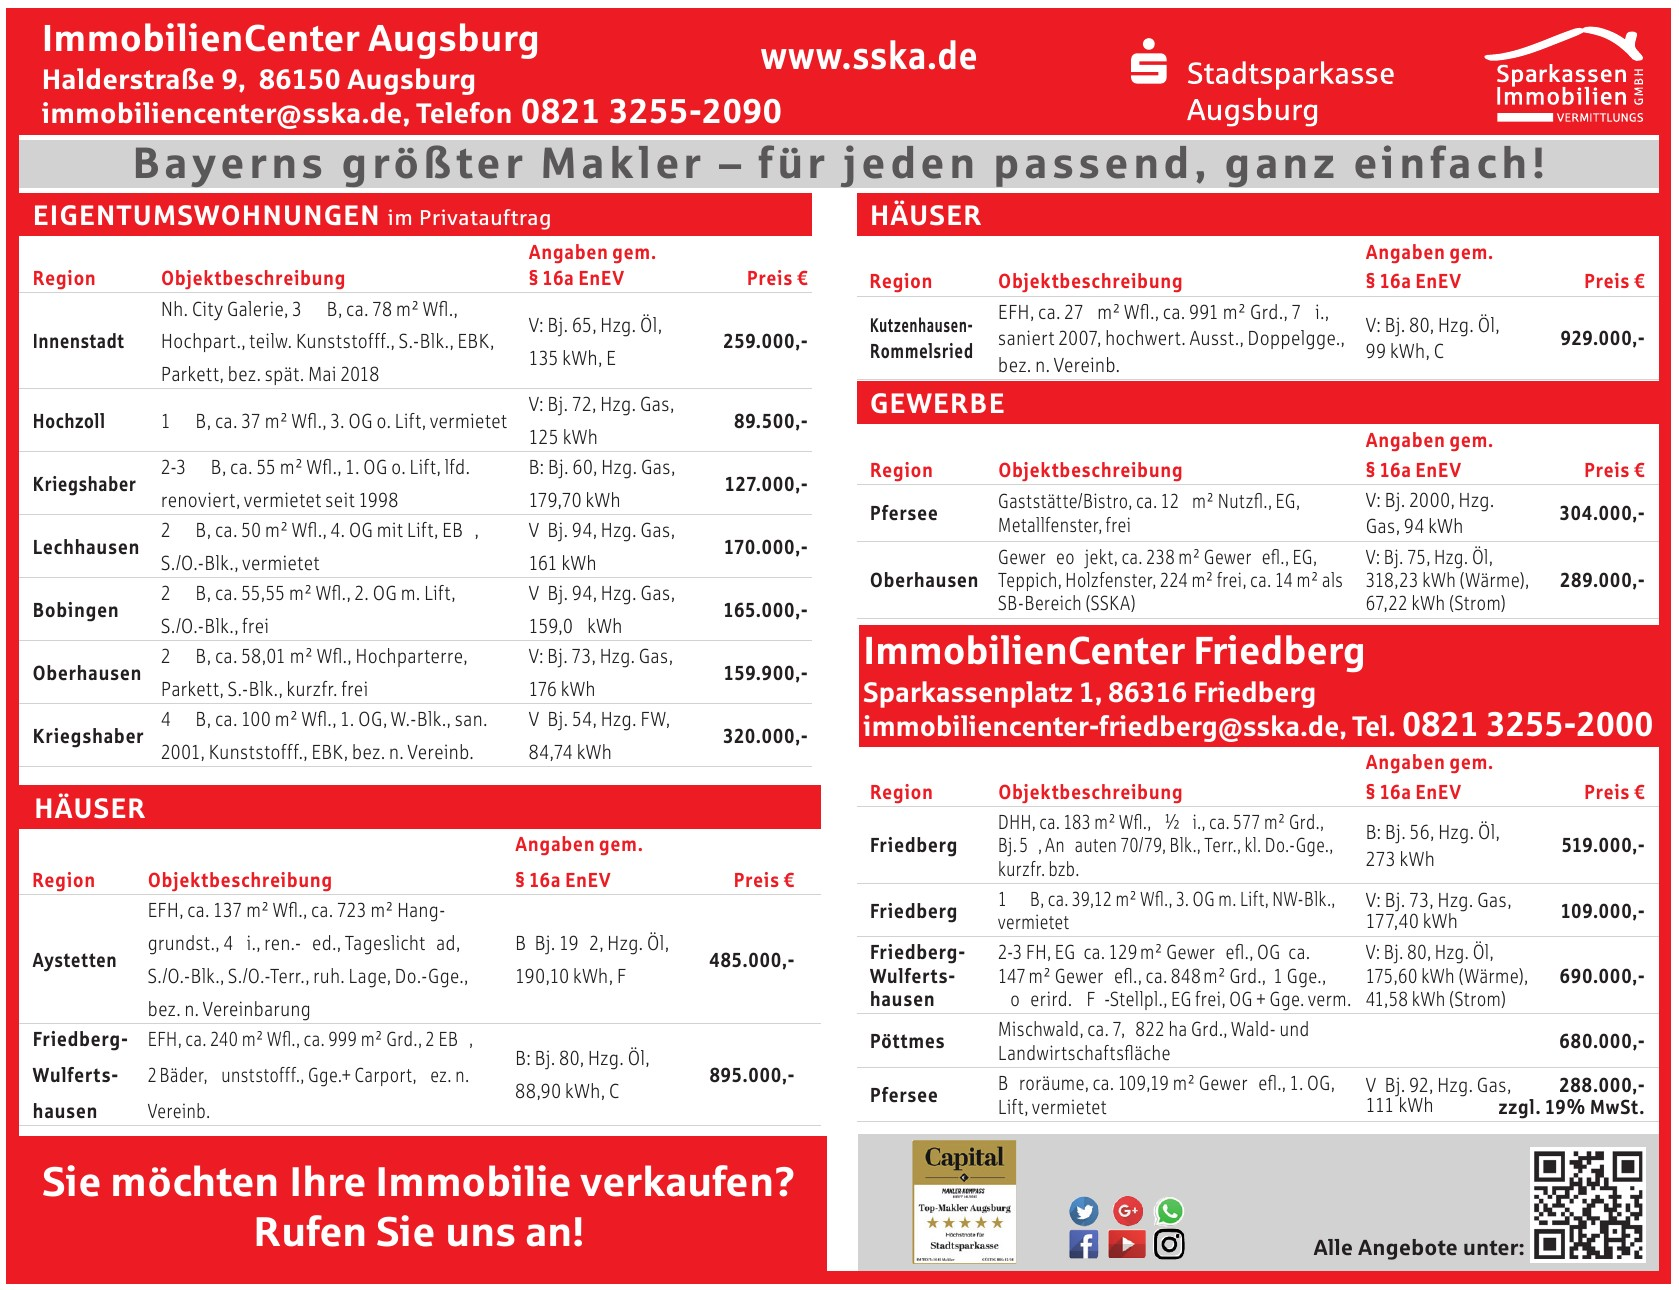 Immobilien Center Augsburg